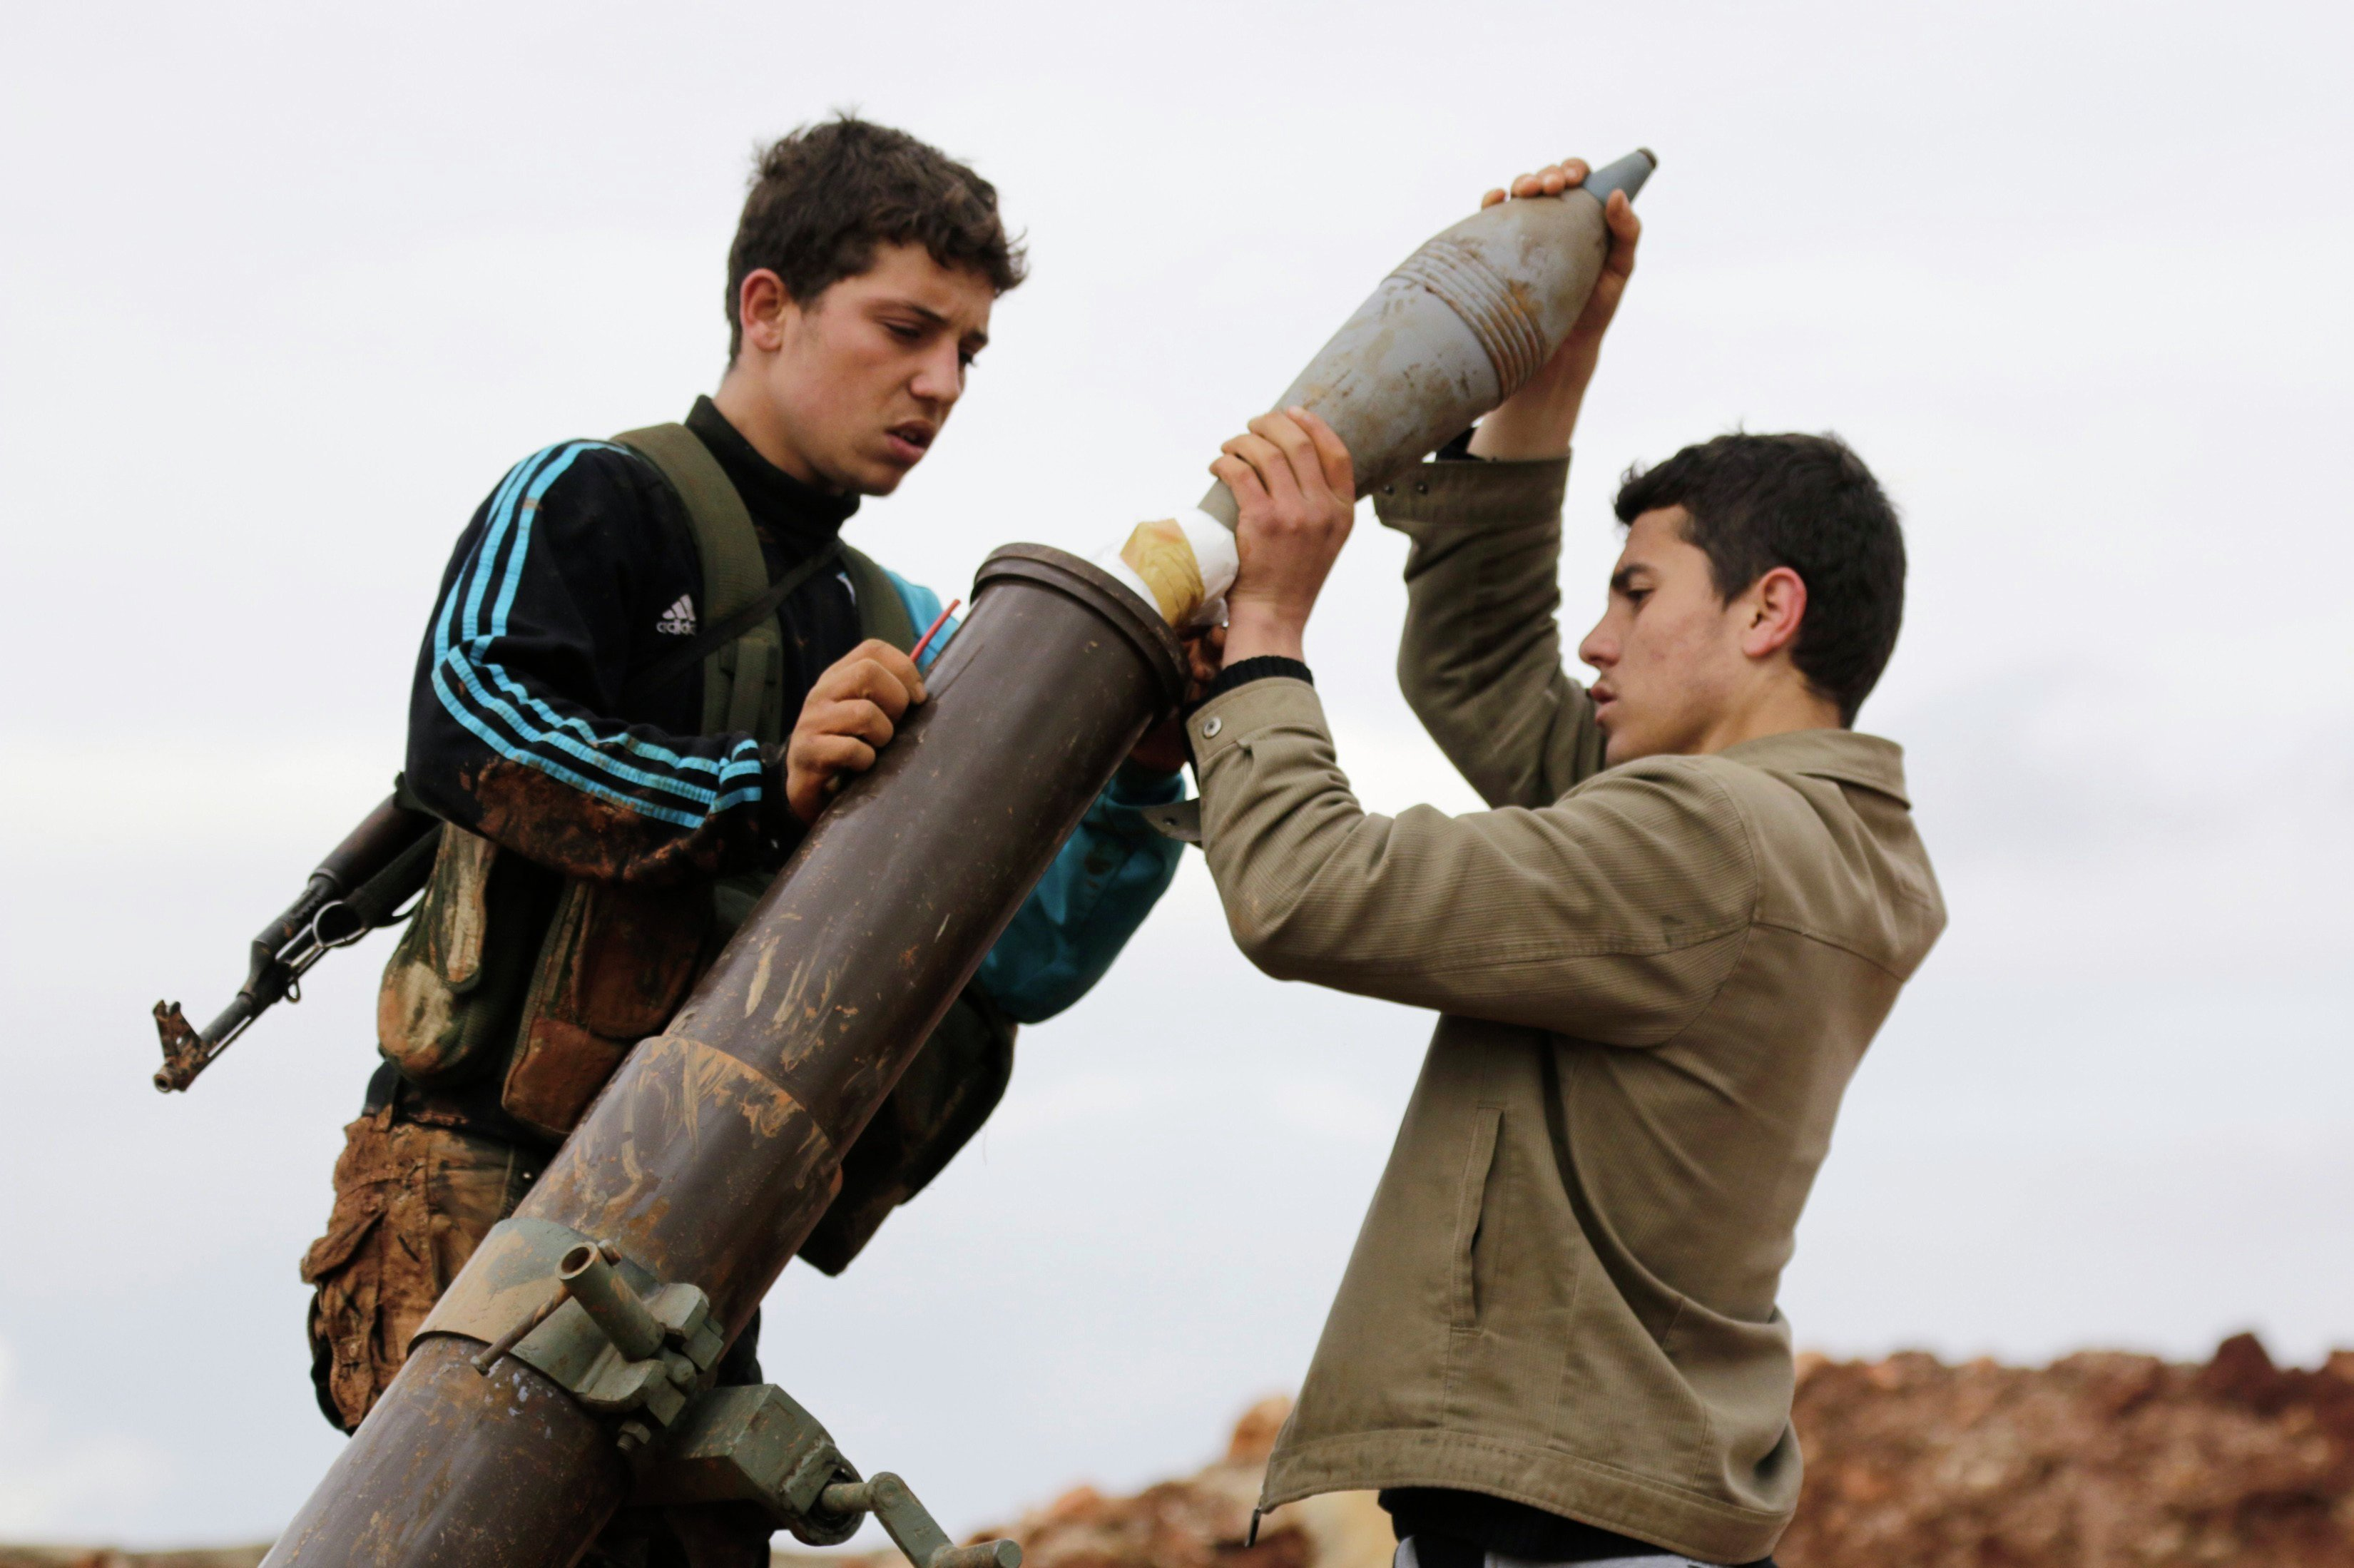 Members of al Qaeda's Nusra Front prepare to fire a mortar towards forces loyal to Syria's President Bashar al-Assad in al-Mallah farms, north of Aleppo, February 18, 2015